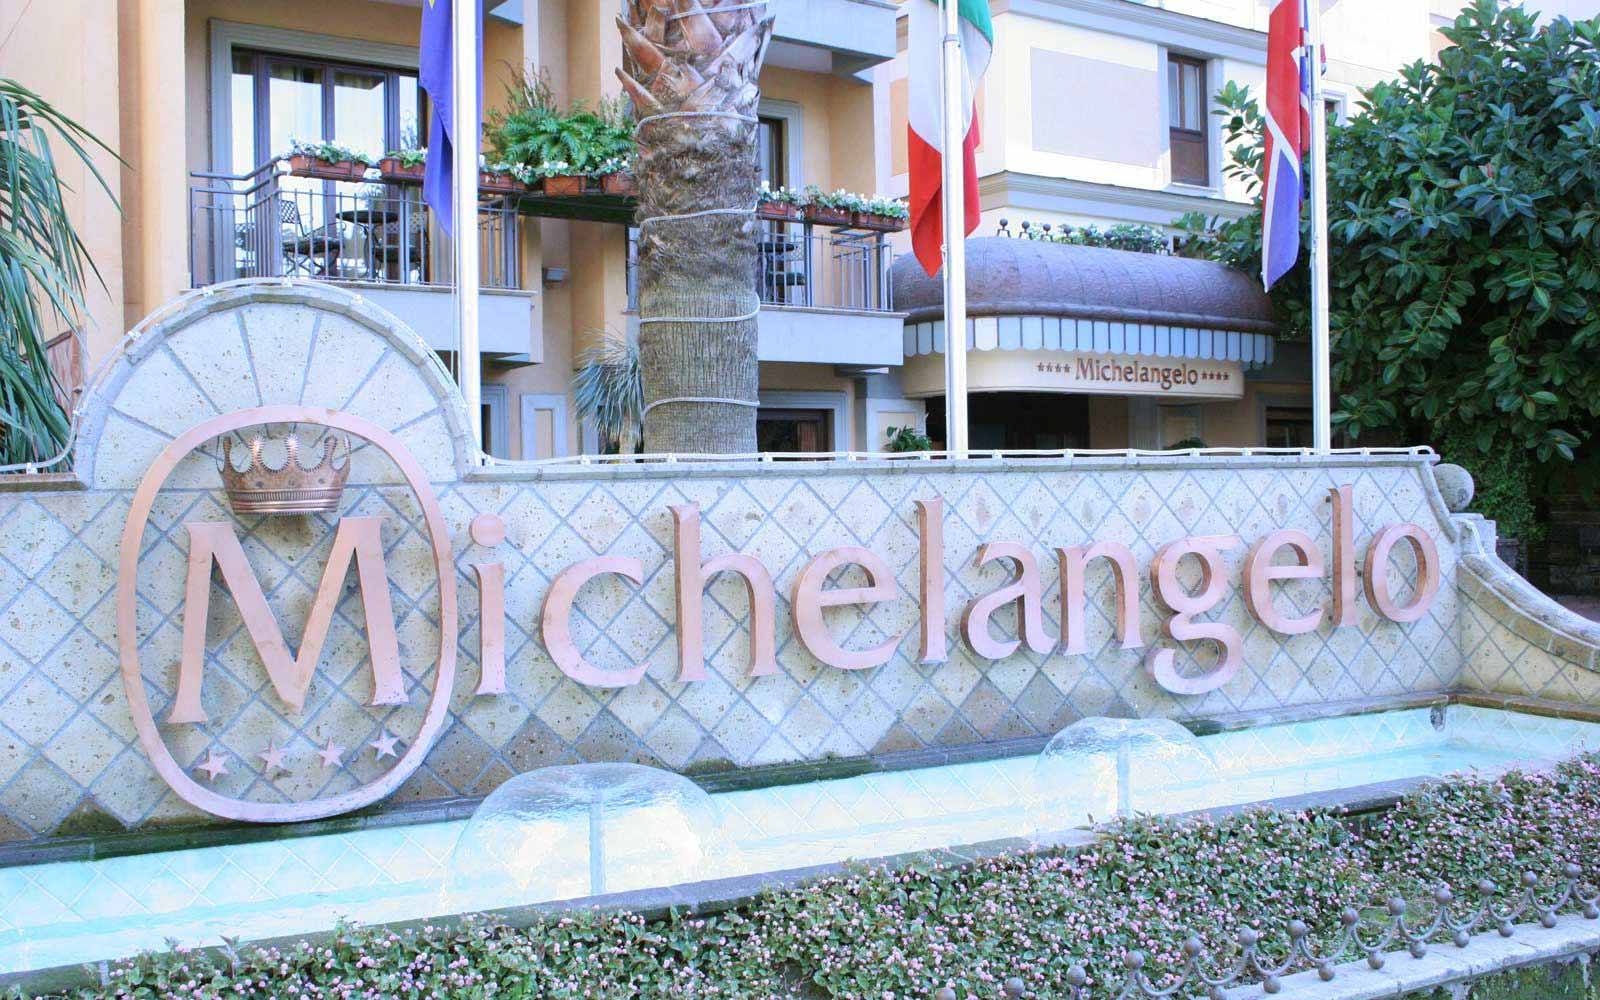 Front of Hotel Michelangelo